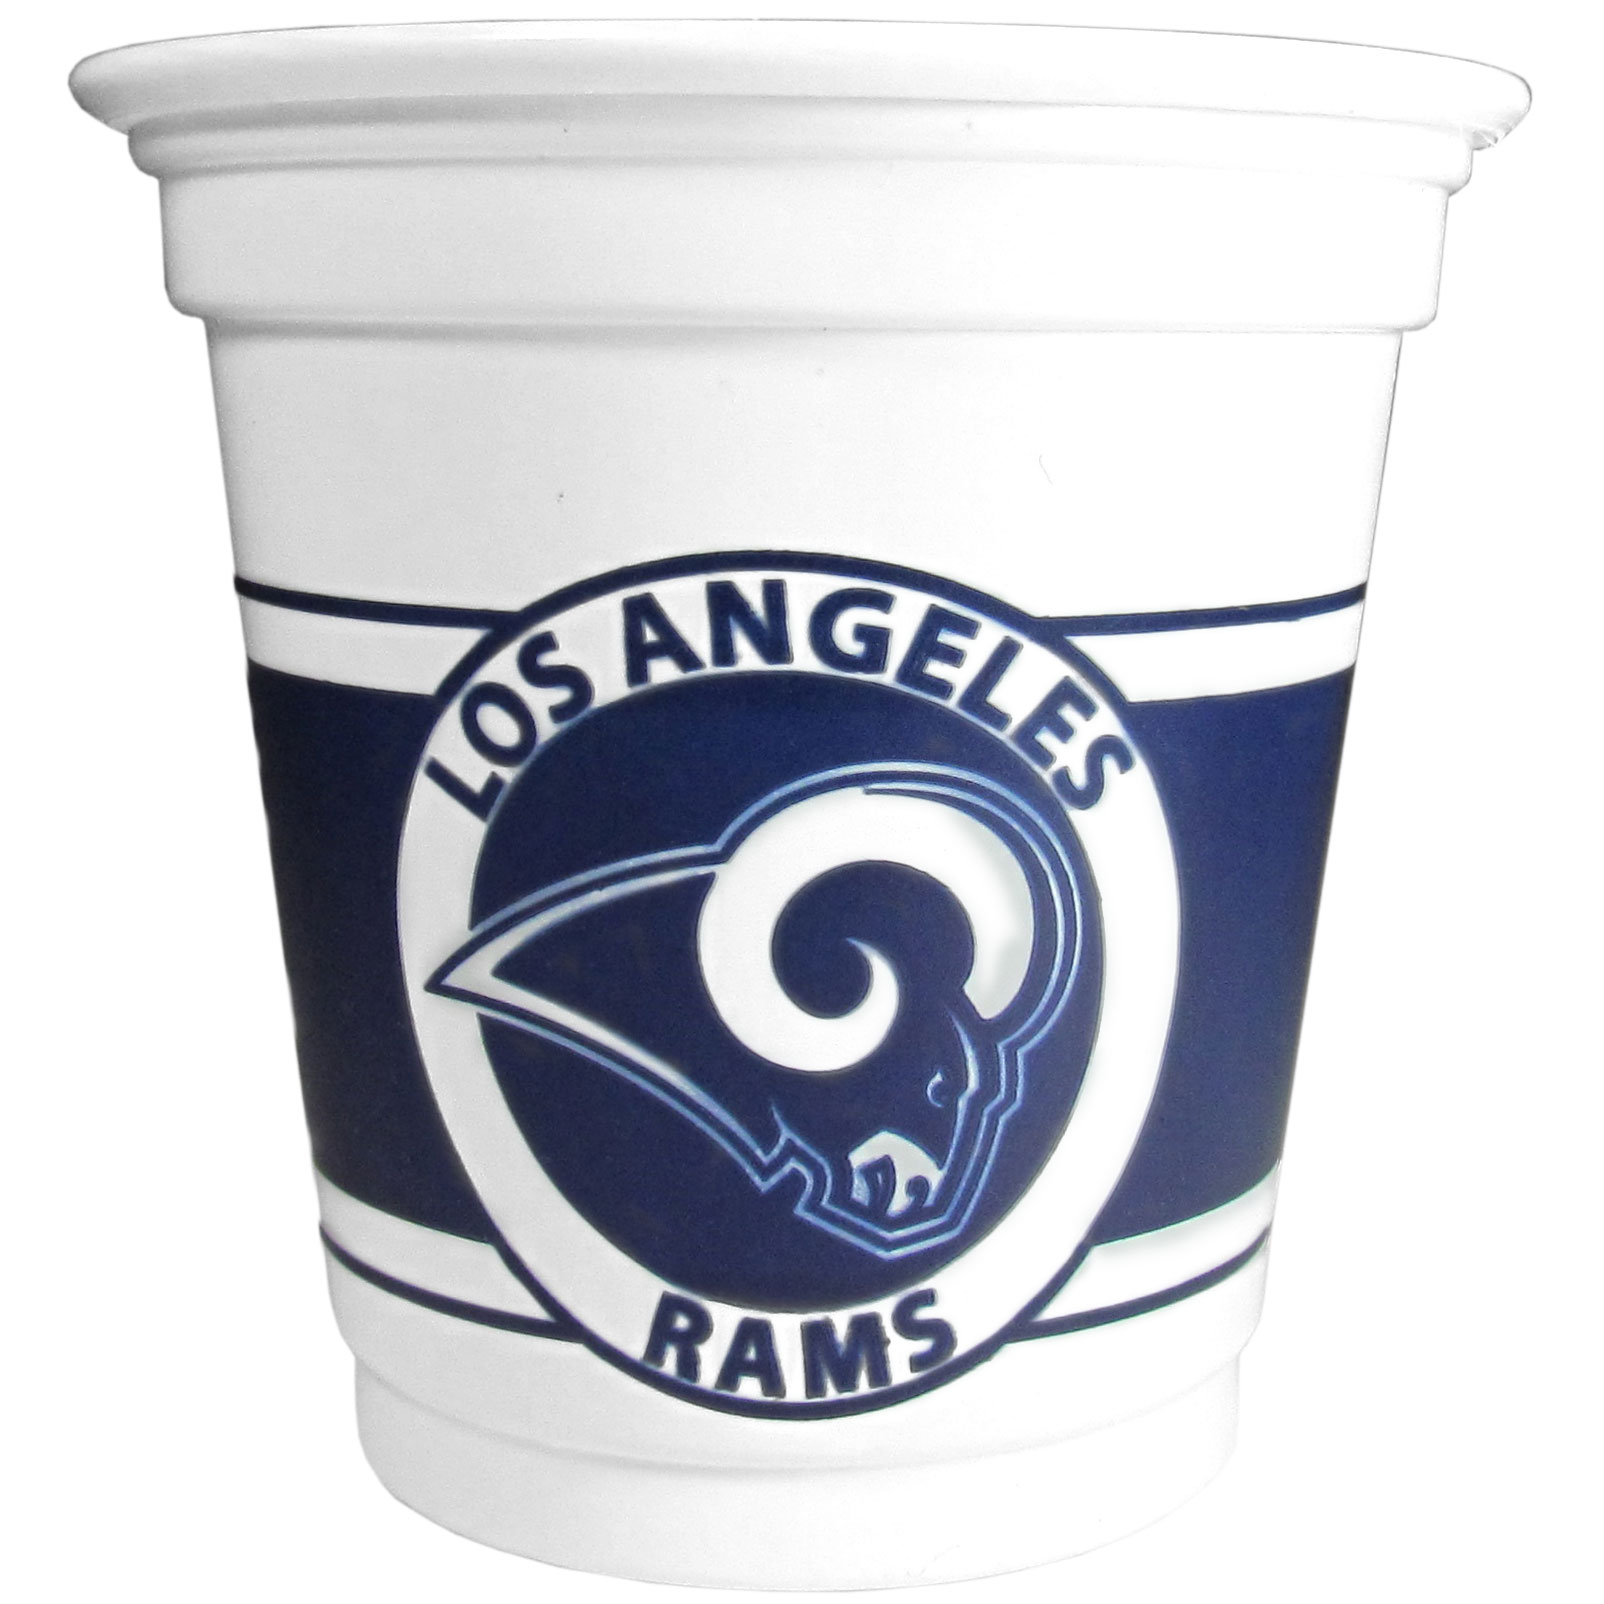 Los Angeles Rams 18 Game Day Mini Cups - No better way to show your off your team pride on game day than these Los Angeles Rams game day mini cups. The 3 ounce disposable glasses are the perfect addition to your game day party or tailgating BBQ. The cups come in a sleeve of 18 to make sure everyone is sporting true team spirit!